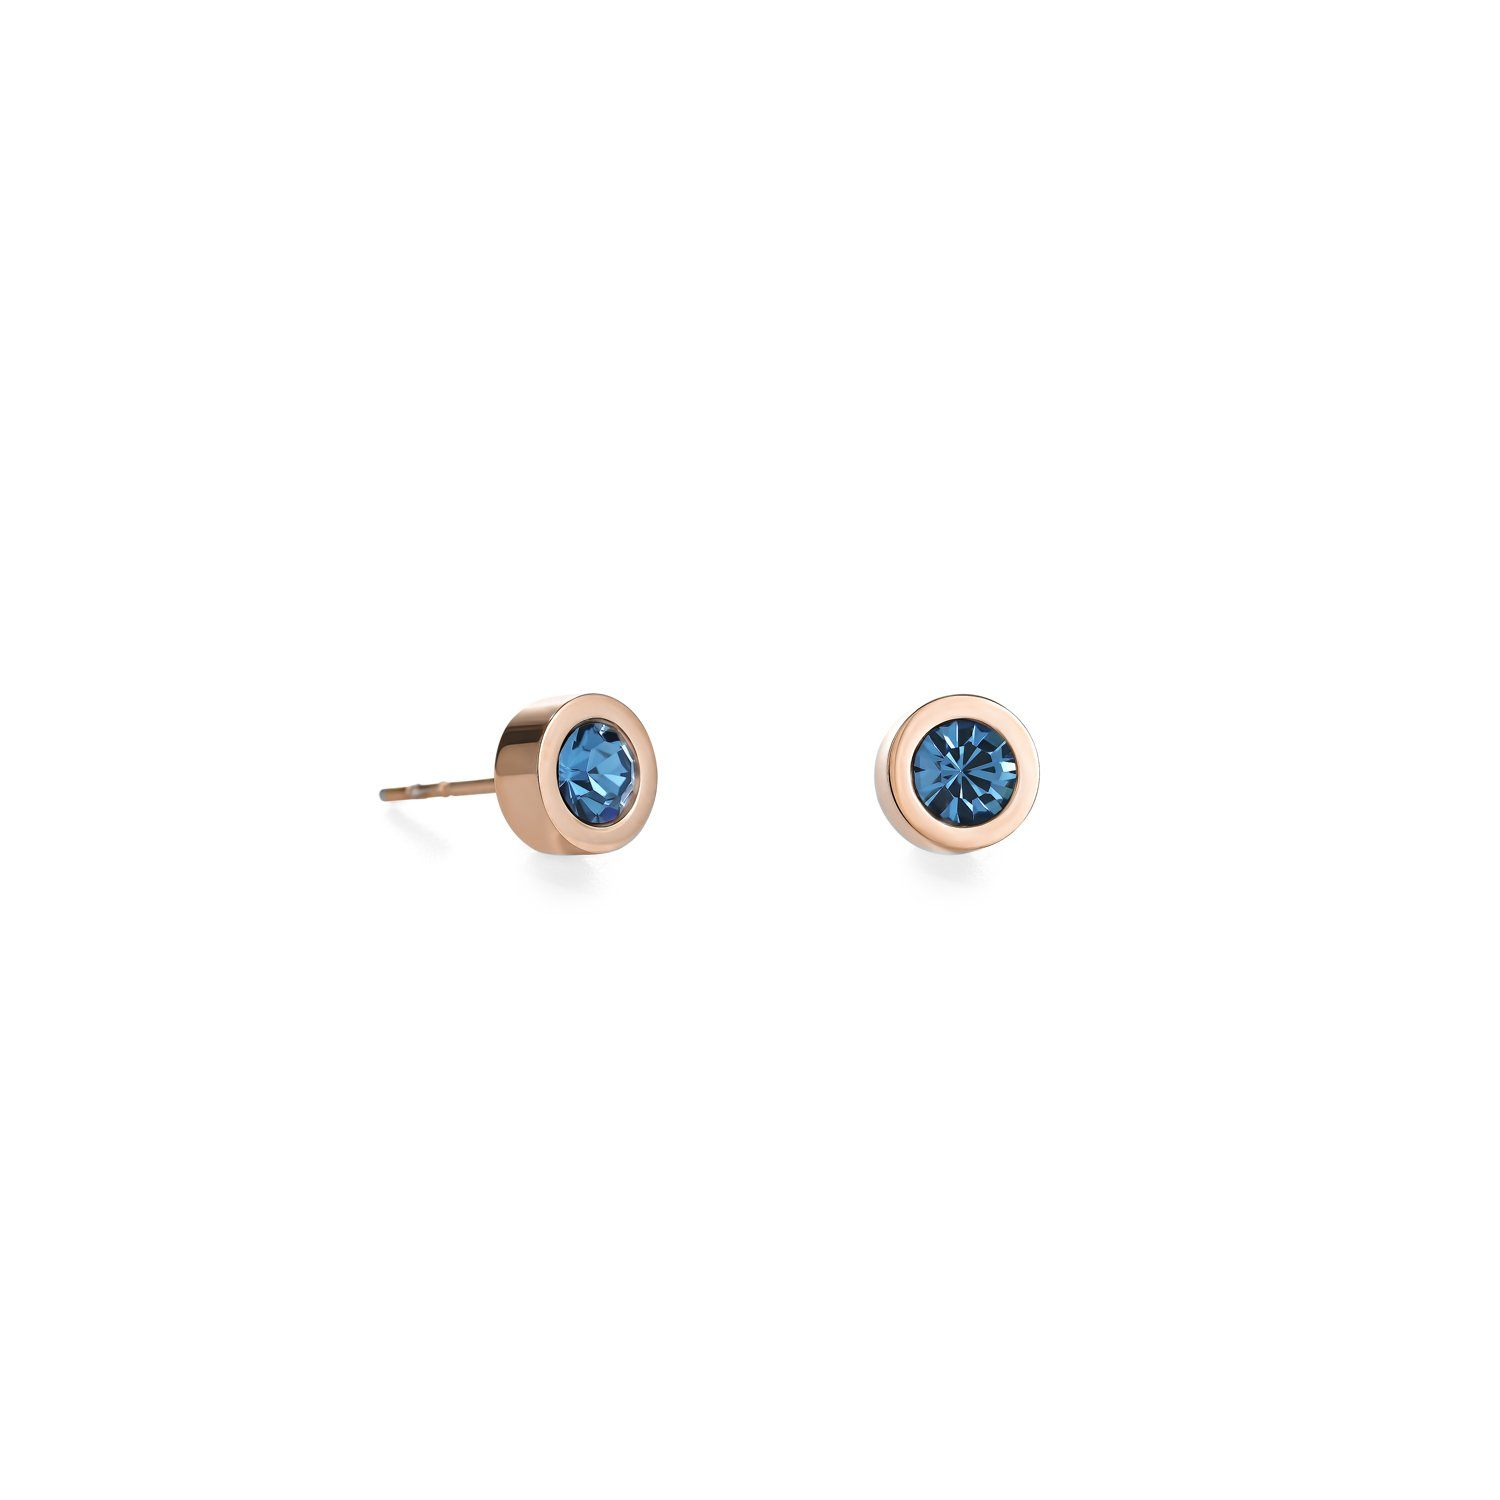 Rose Gold Stainless Steel Round Studs with Petrol Crystals Jewellery Coeur de Lion